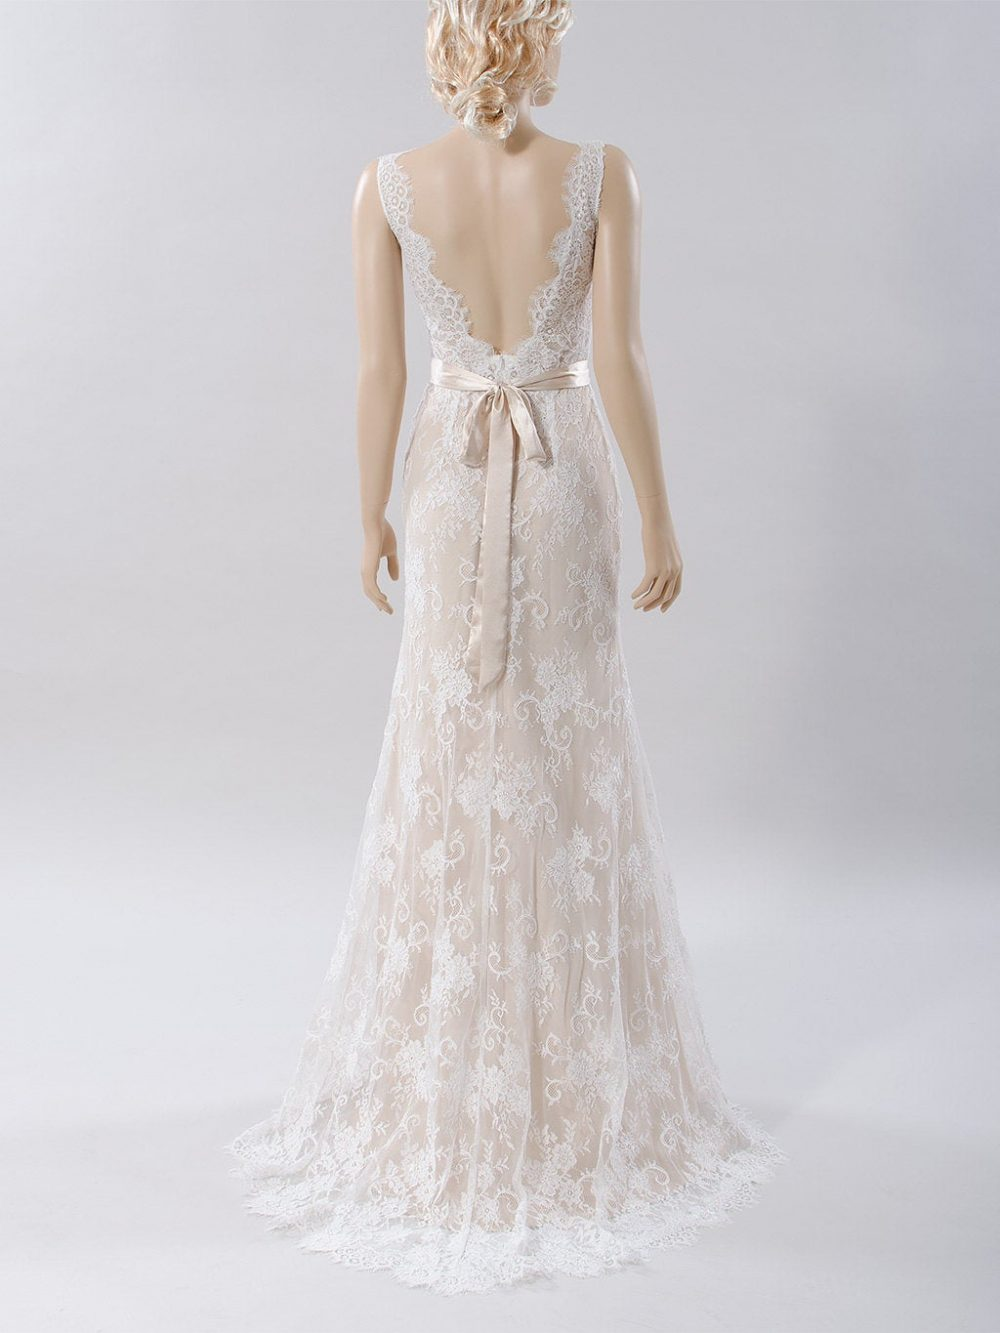 Lace Wedding Dress Nude Sleeveless Boho Bohemian Bridal Gown Fit & Flare